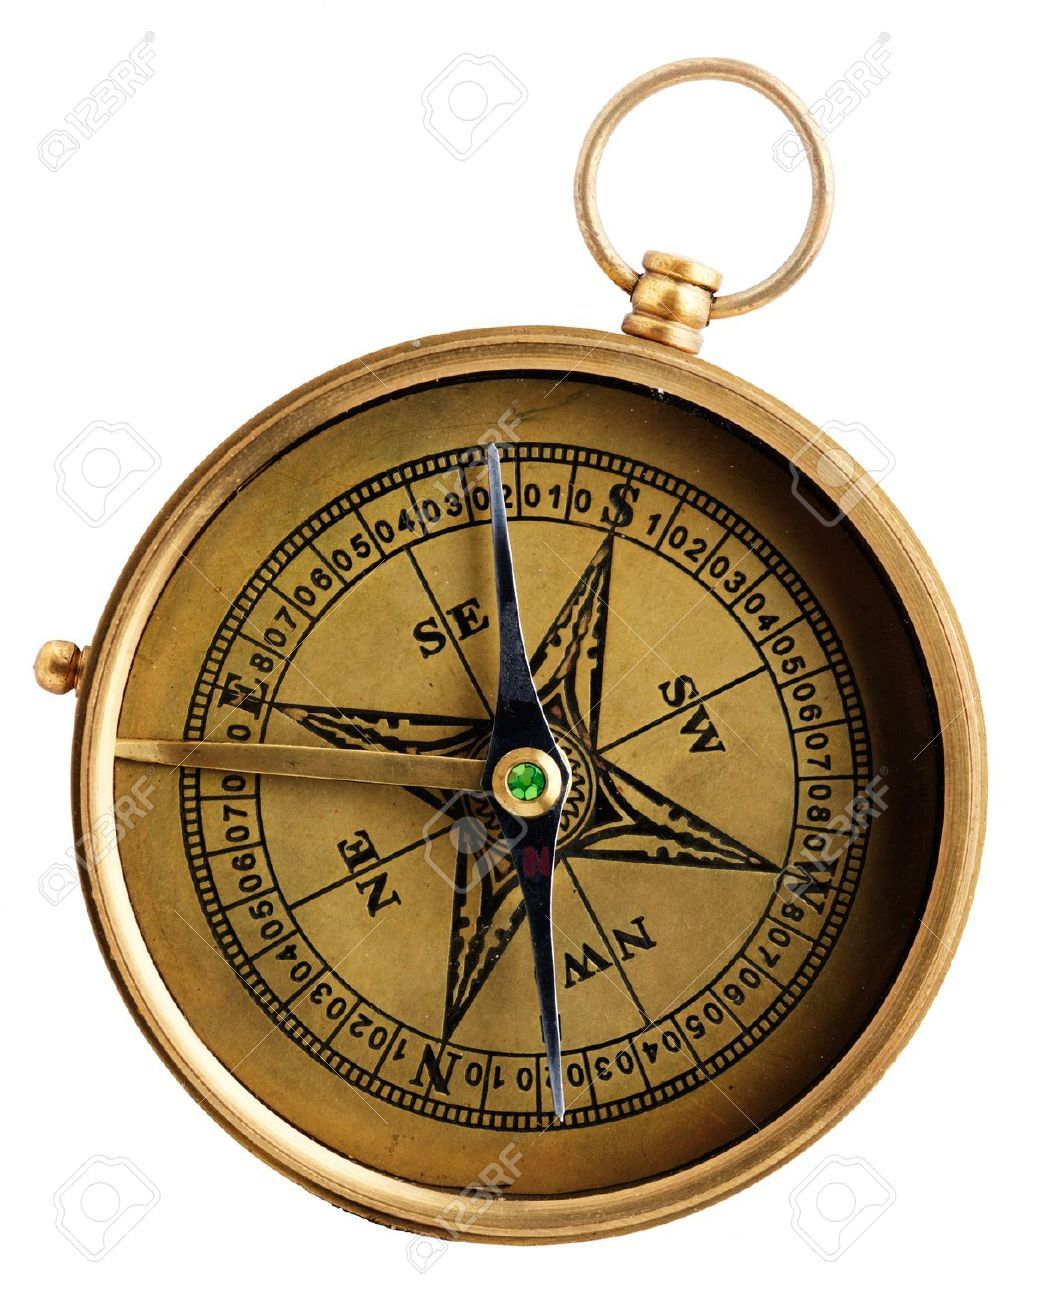 9277890-Vintage-compass-isolated-on-white-background-Stock ...